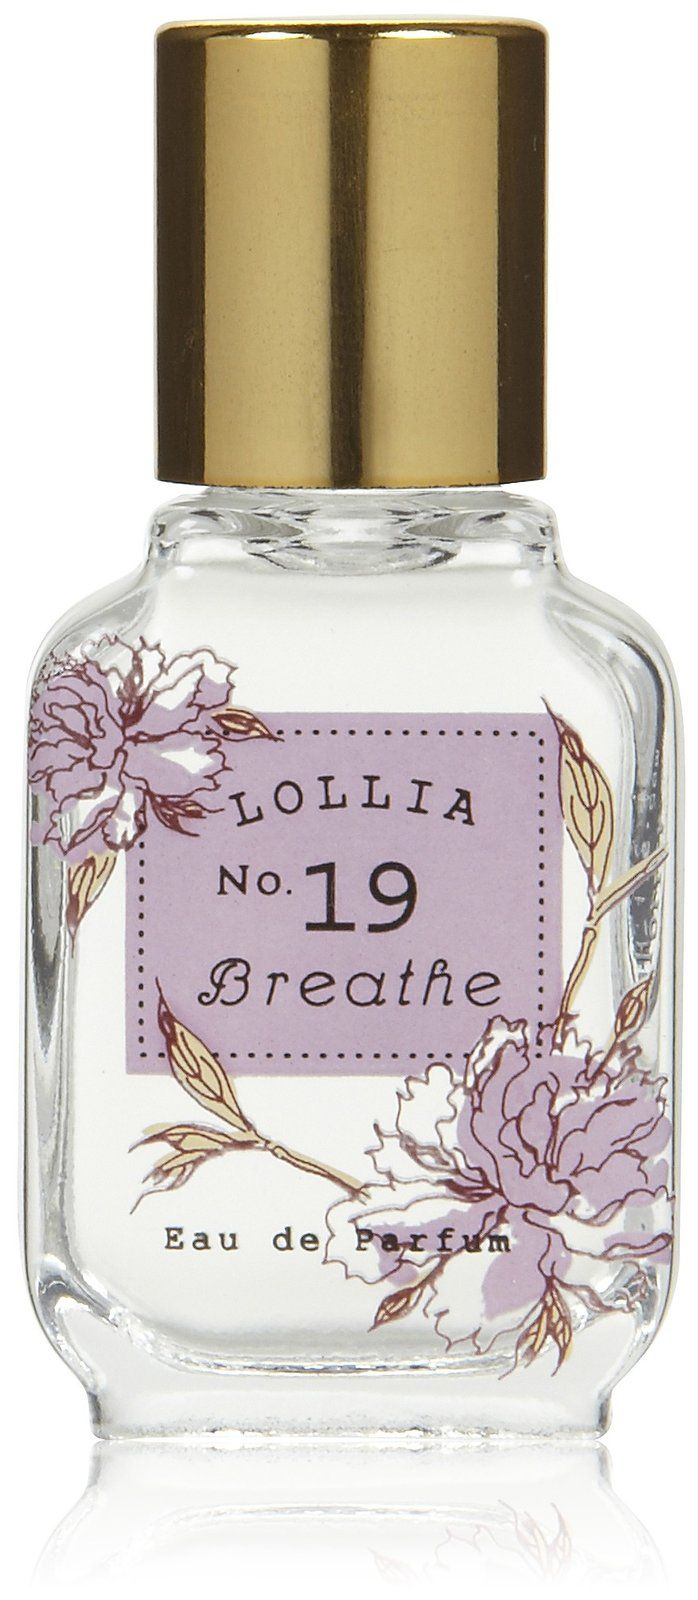 Lollia Breathe Little Luxe Parfum Free Shipping You Smell